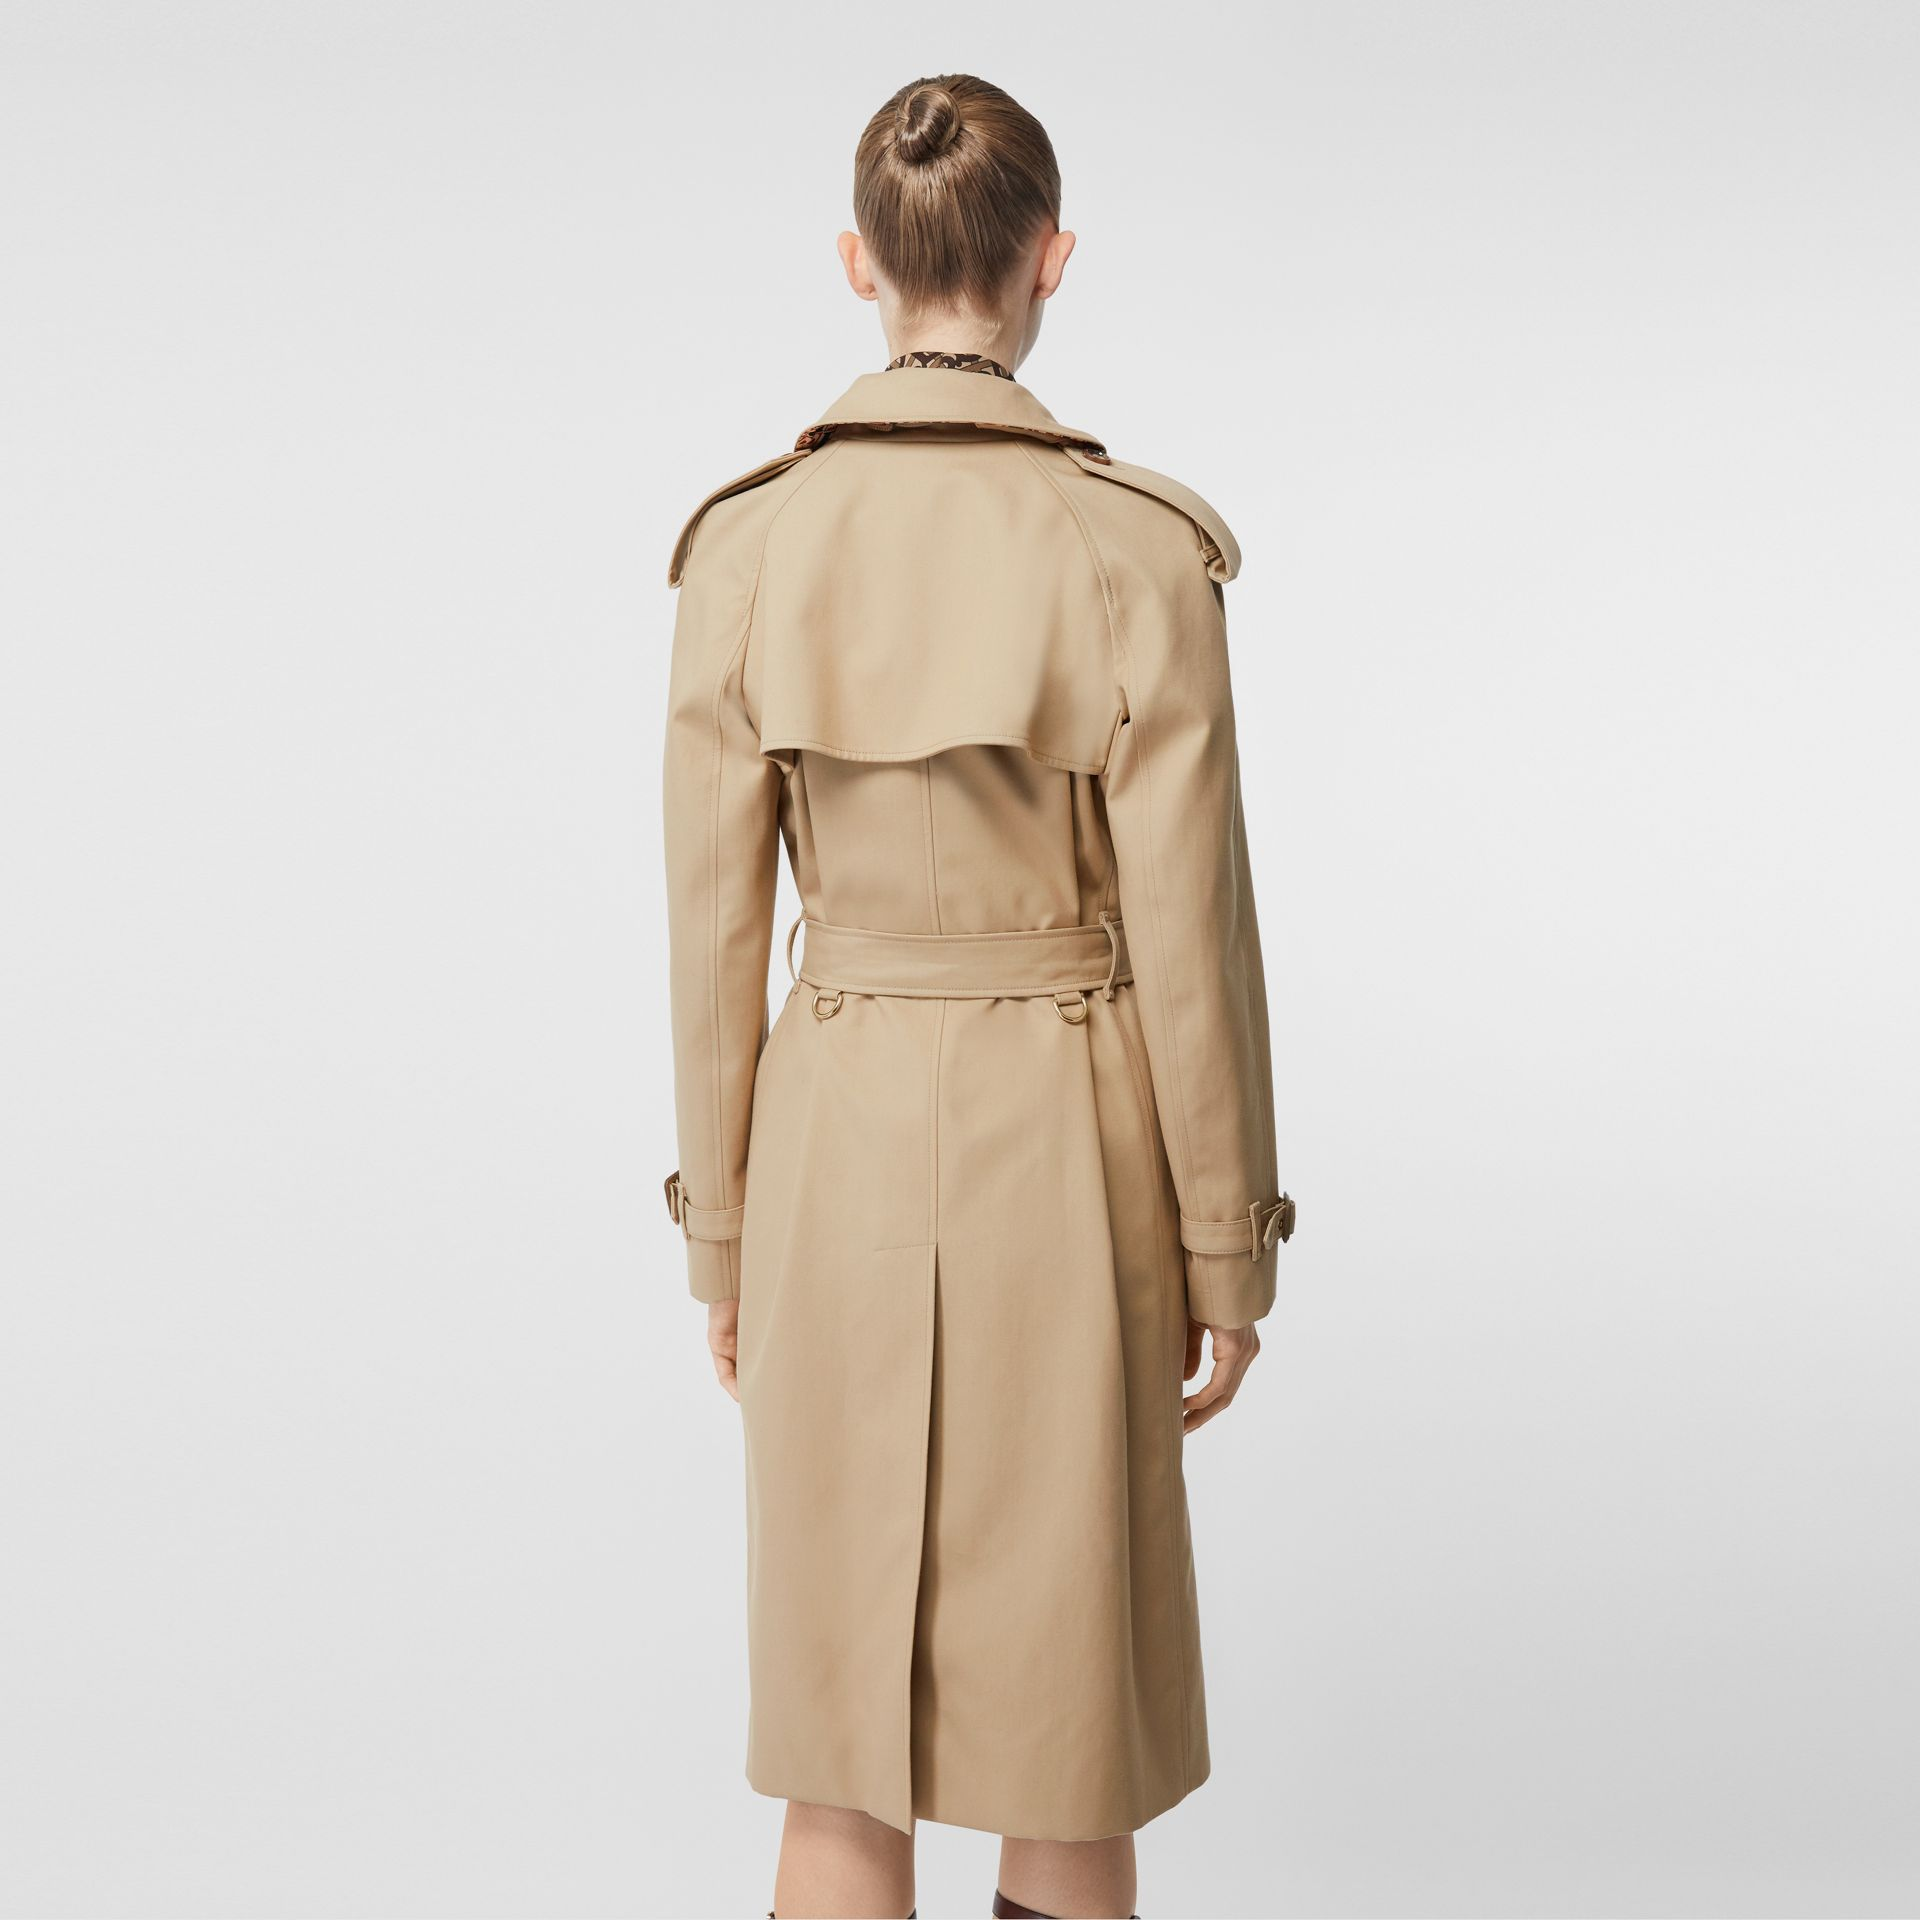 Archive Print-lined Cotton Gabardine Trench Coat in Honey - Women | Burberry Australia - gallery image 2